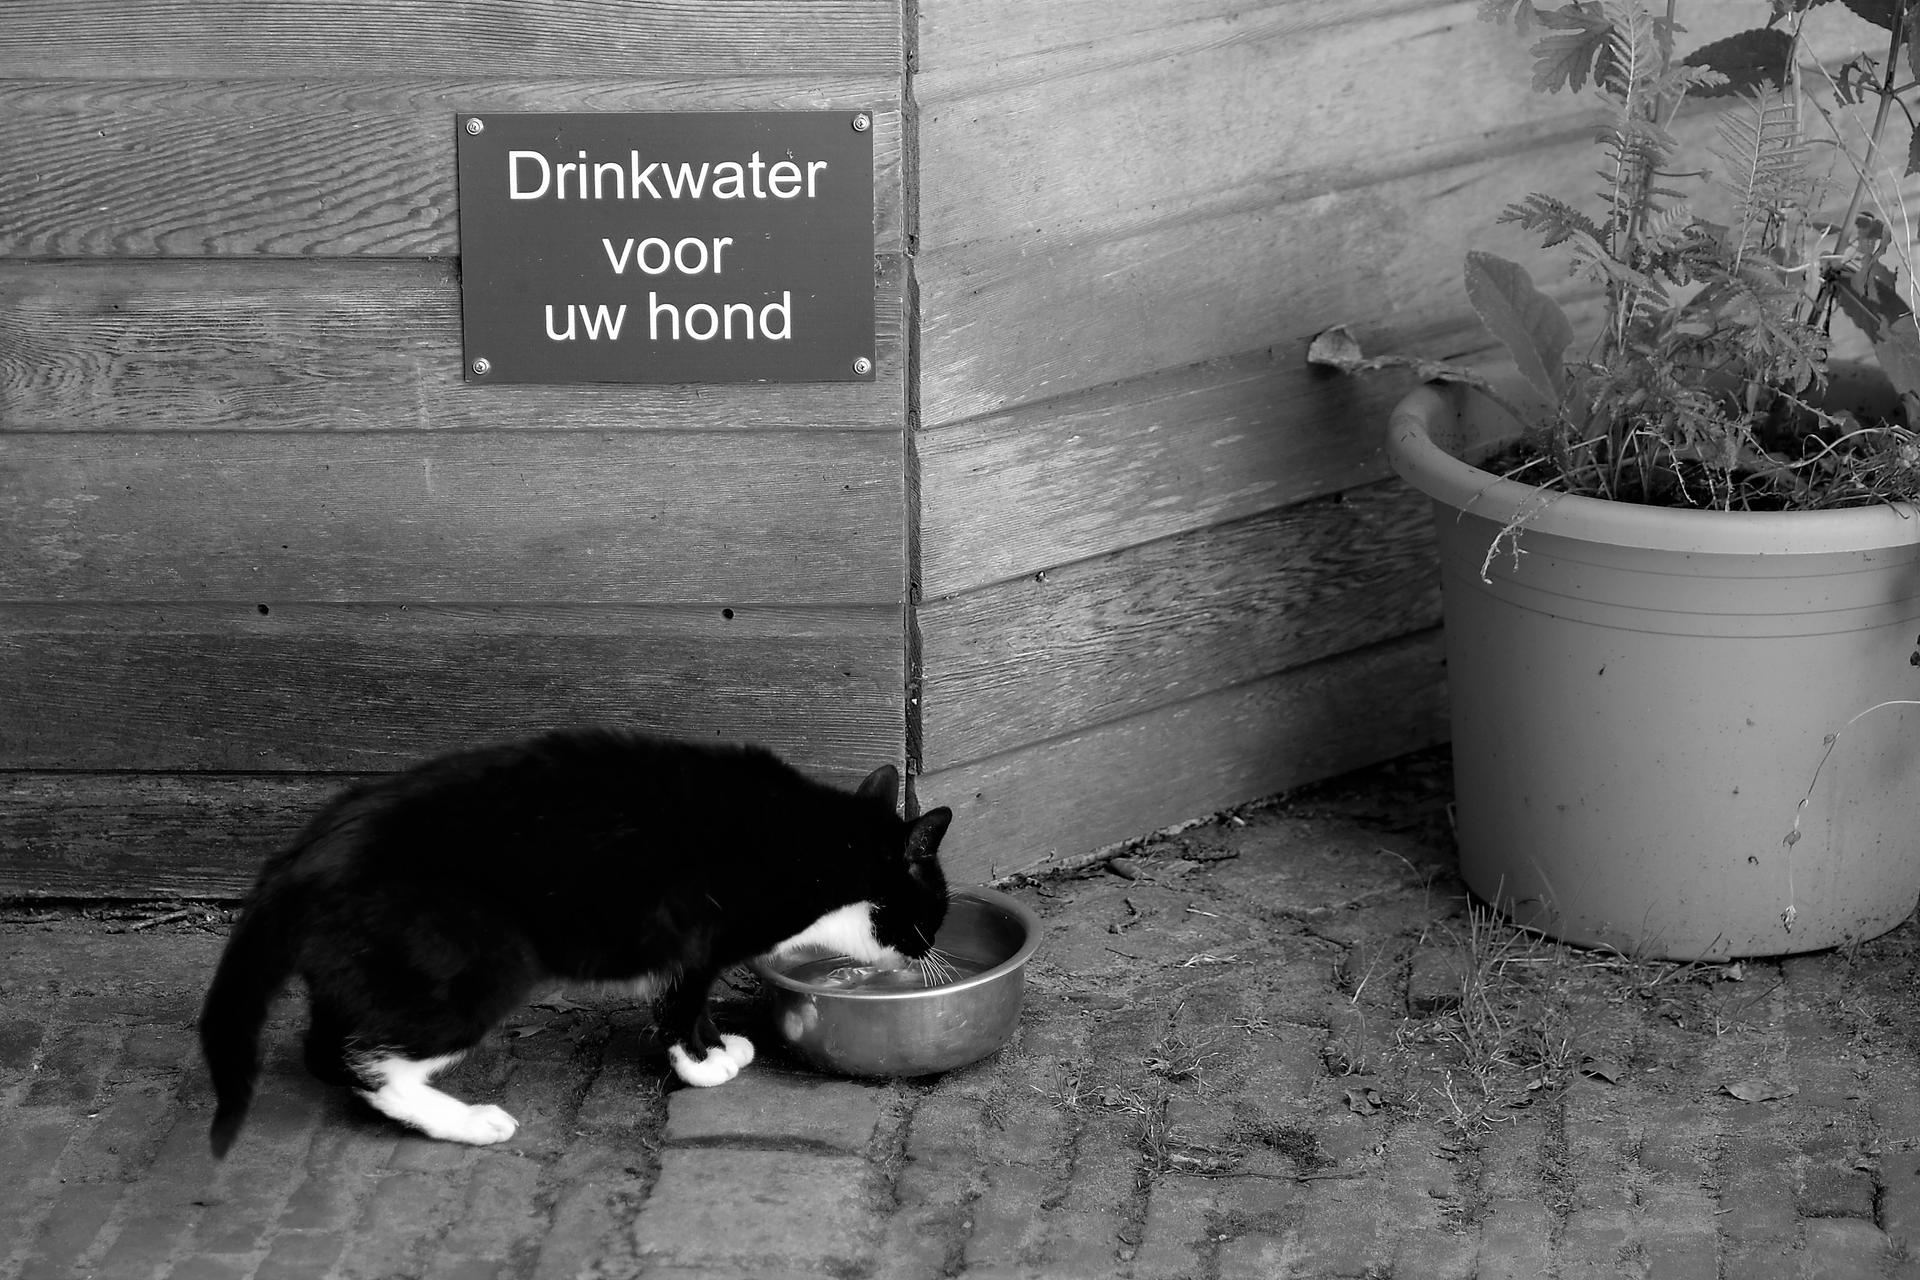 Drinking water for your dog